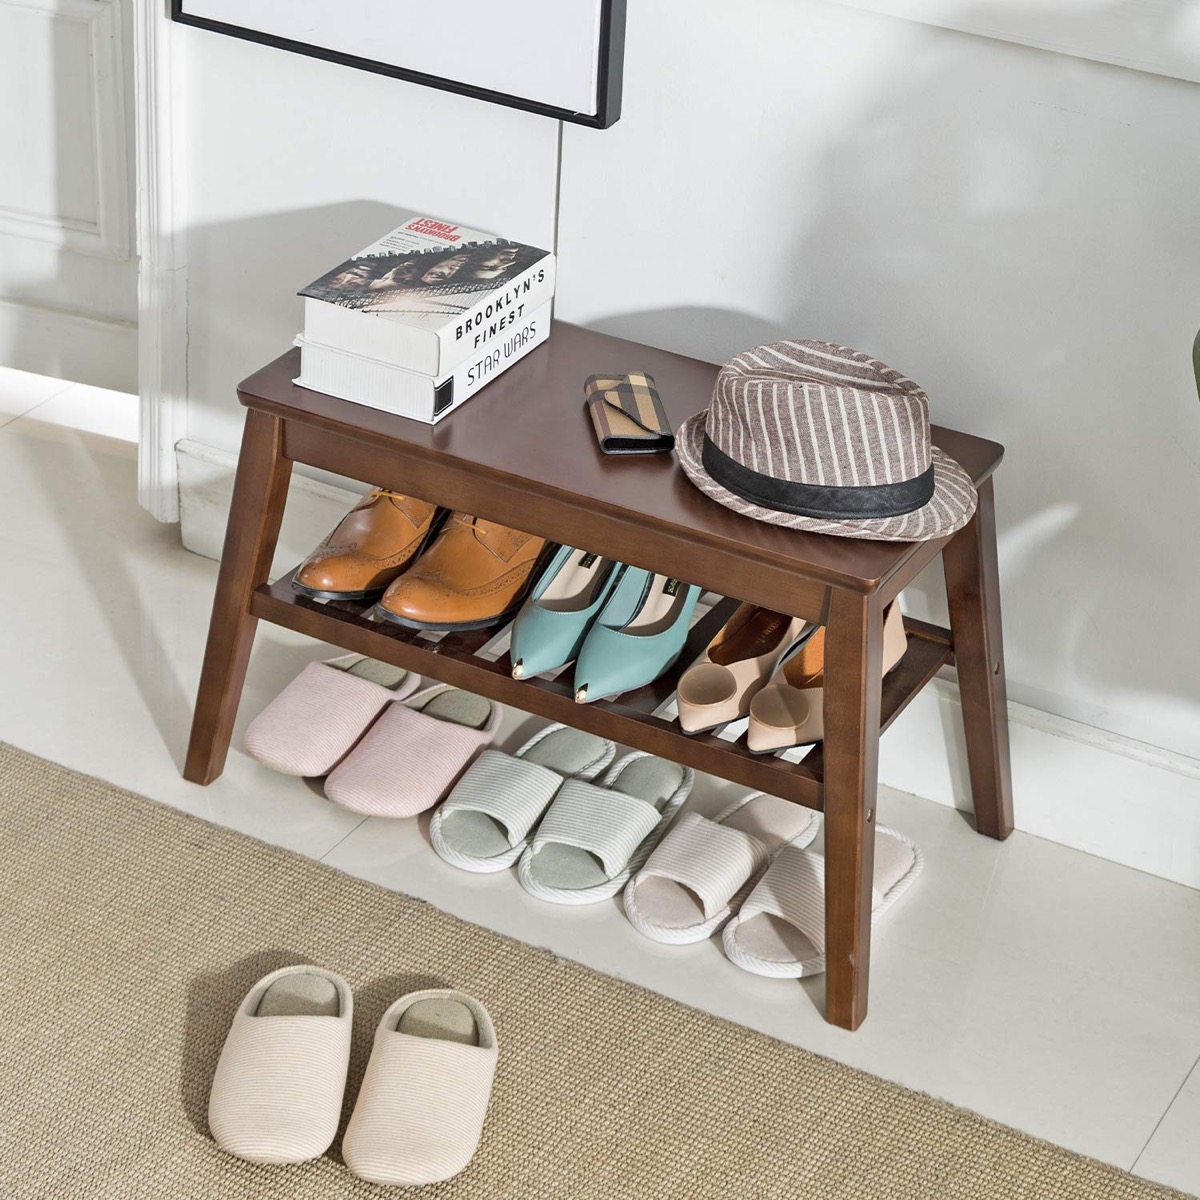 Small-Wooden-Entryway-Bench-Brown-Finish-With-Shelf-For-Shoes